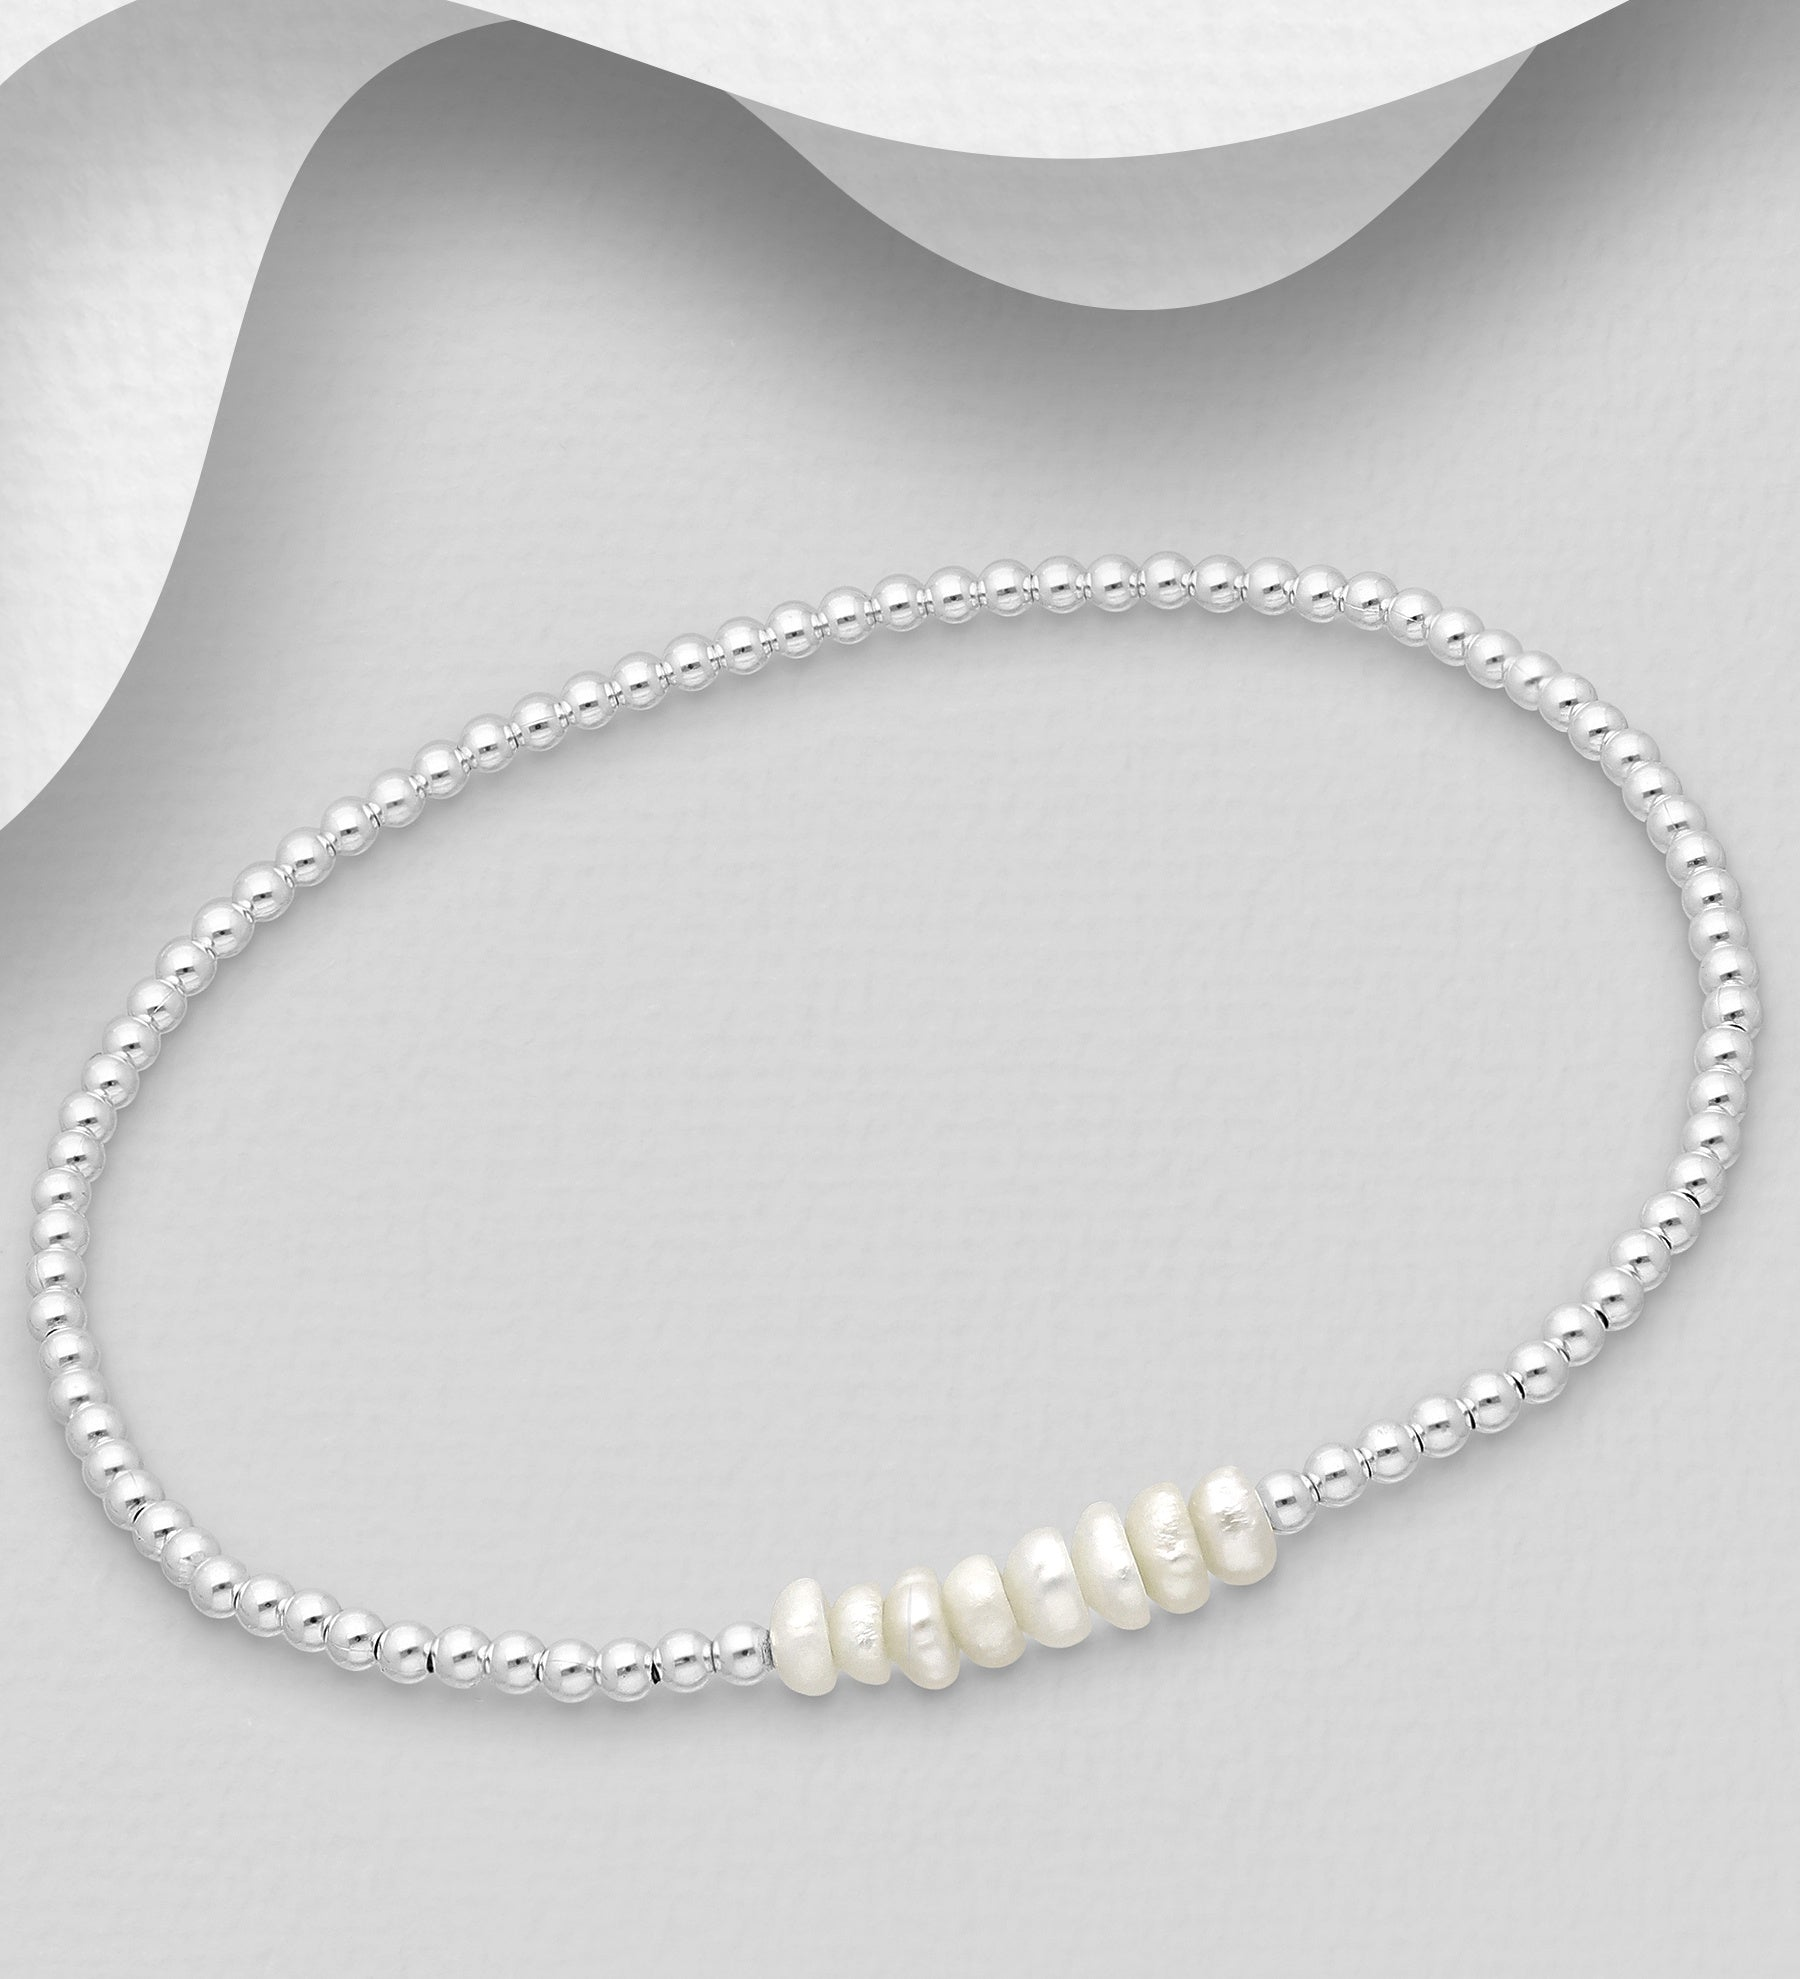 Silver Stretch Bracelet with Pearls